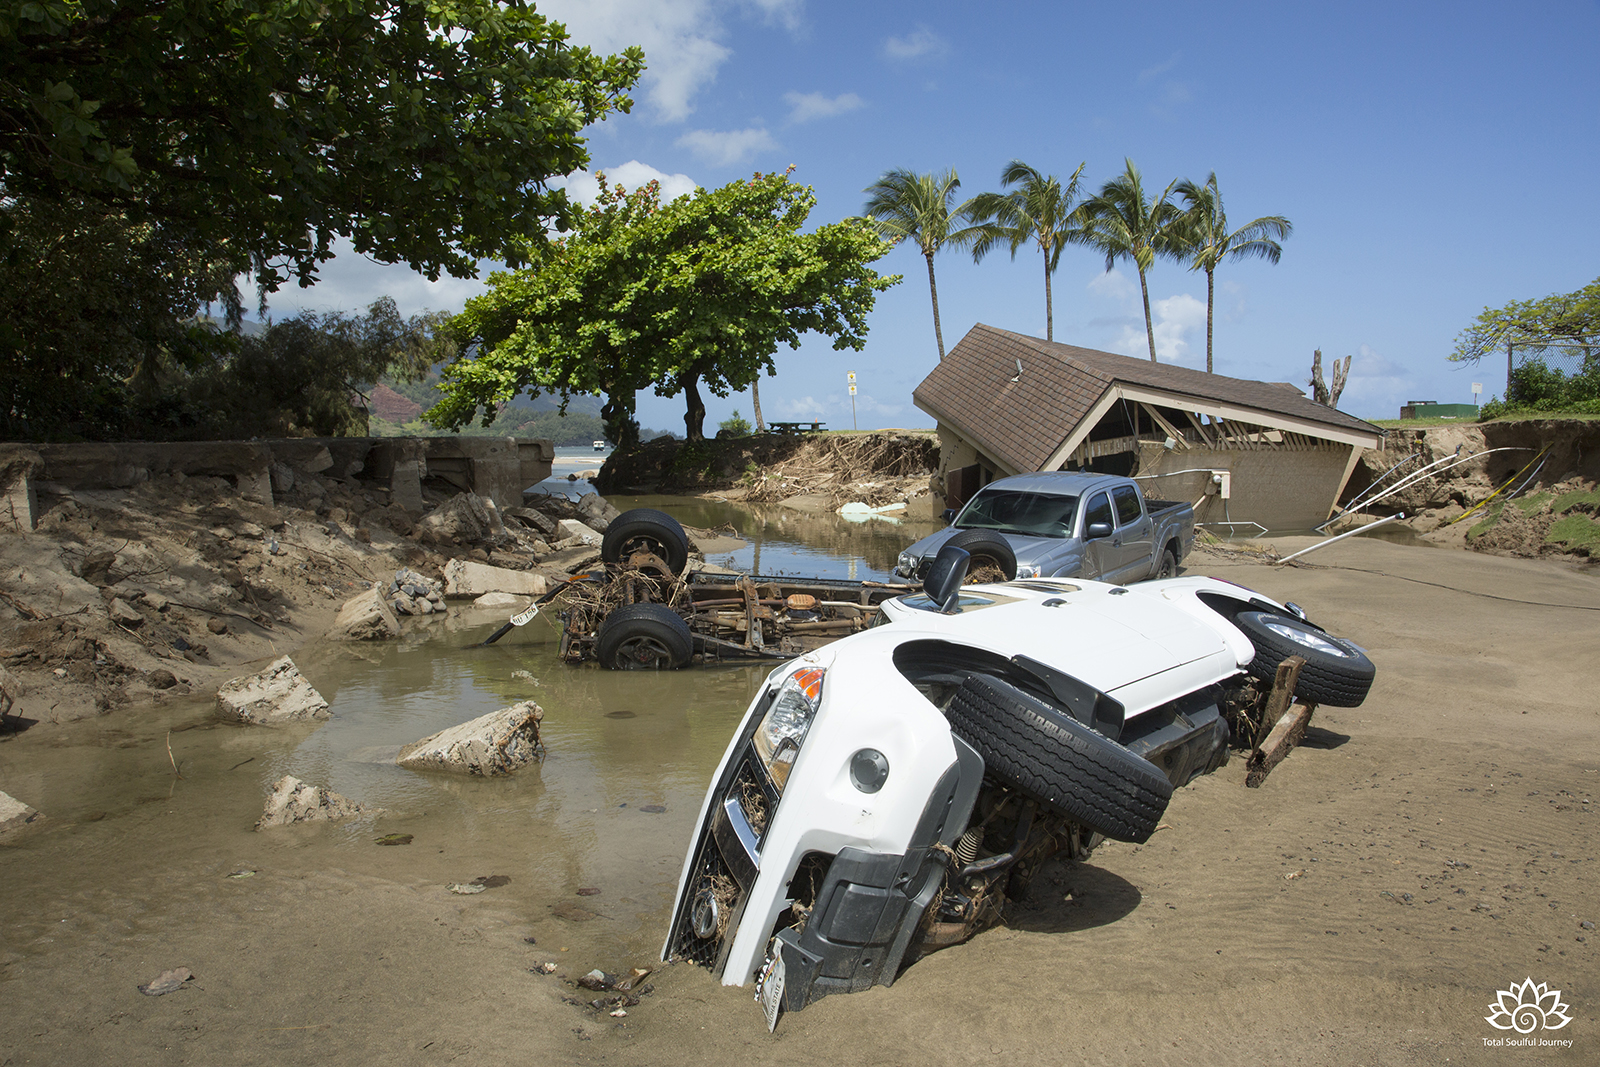 The communities beyond Hanalei were cut off by landslides that blocked the road and had to receive relief supplies by boat. - Photography by Paul Garrett